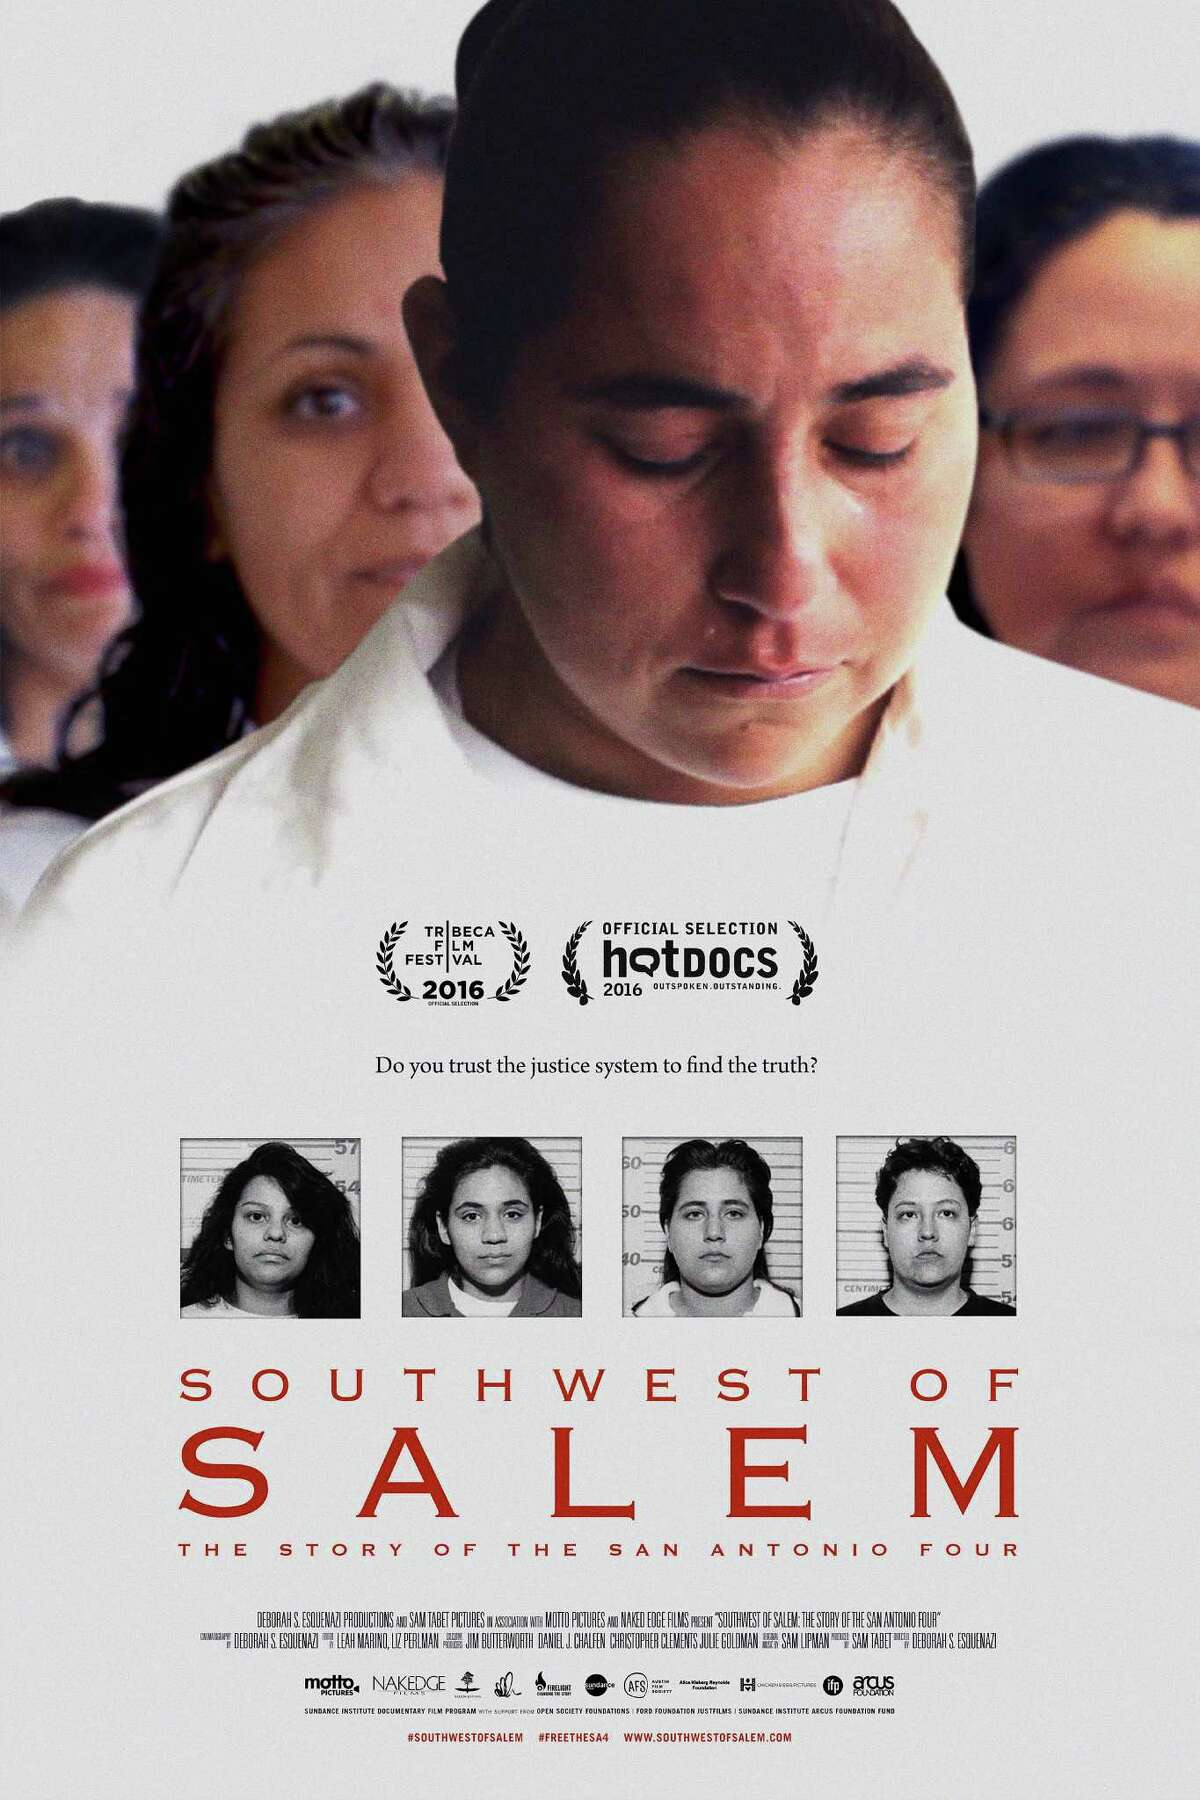 The official poster for the documentary, 'Southwest of Salem: The Story of the San Antonio Four,' which will premiere on TV Oct. 15 on cable's Investigation Discovery channel.